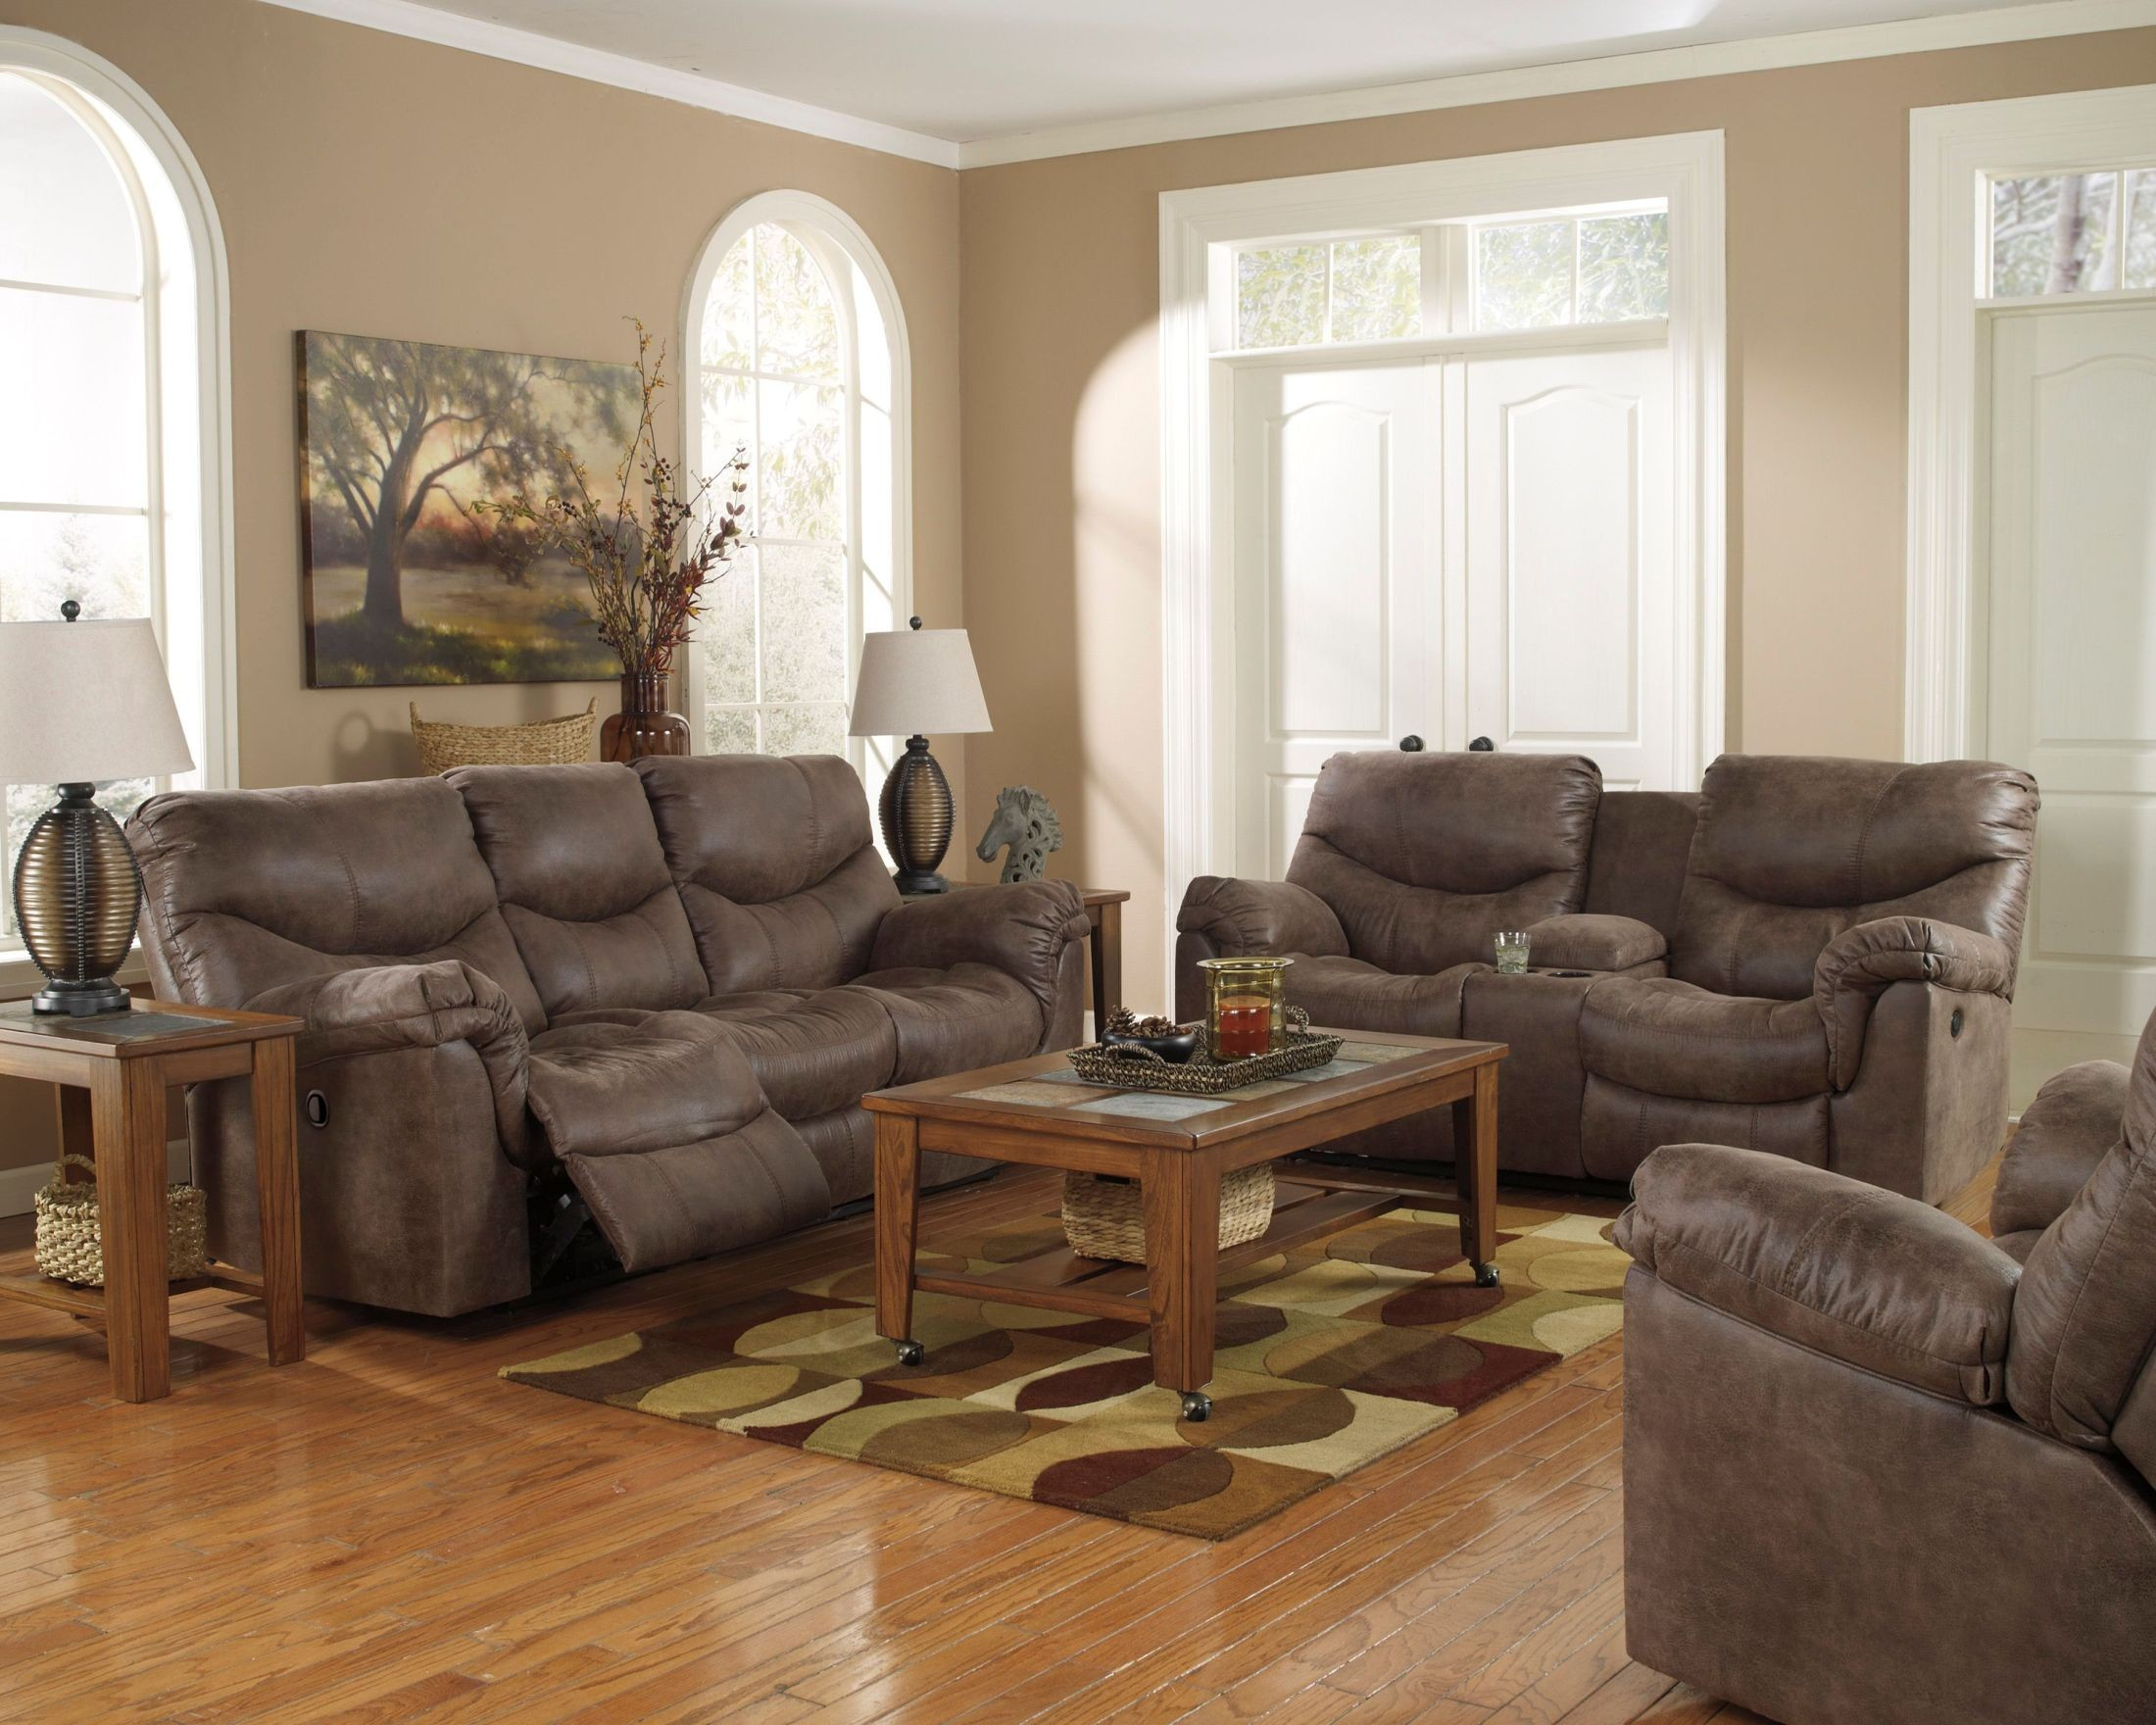 Comfortable Den Furniture Alzena Reclining Living Room Set From Ashley 71400 88 94